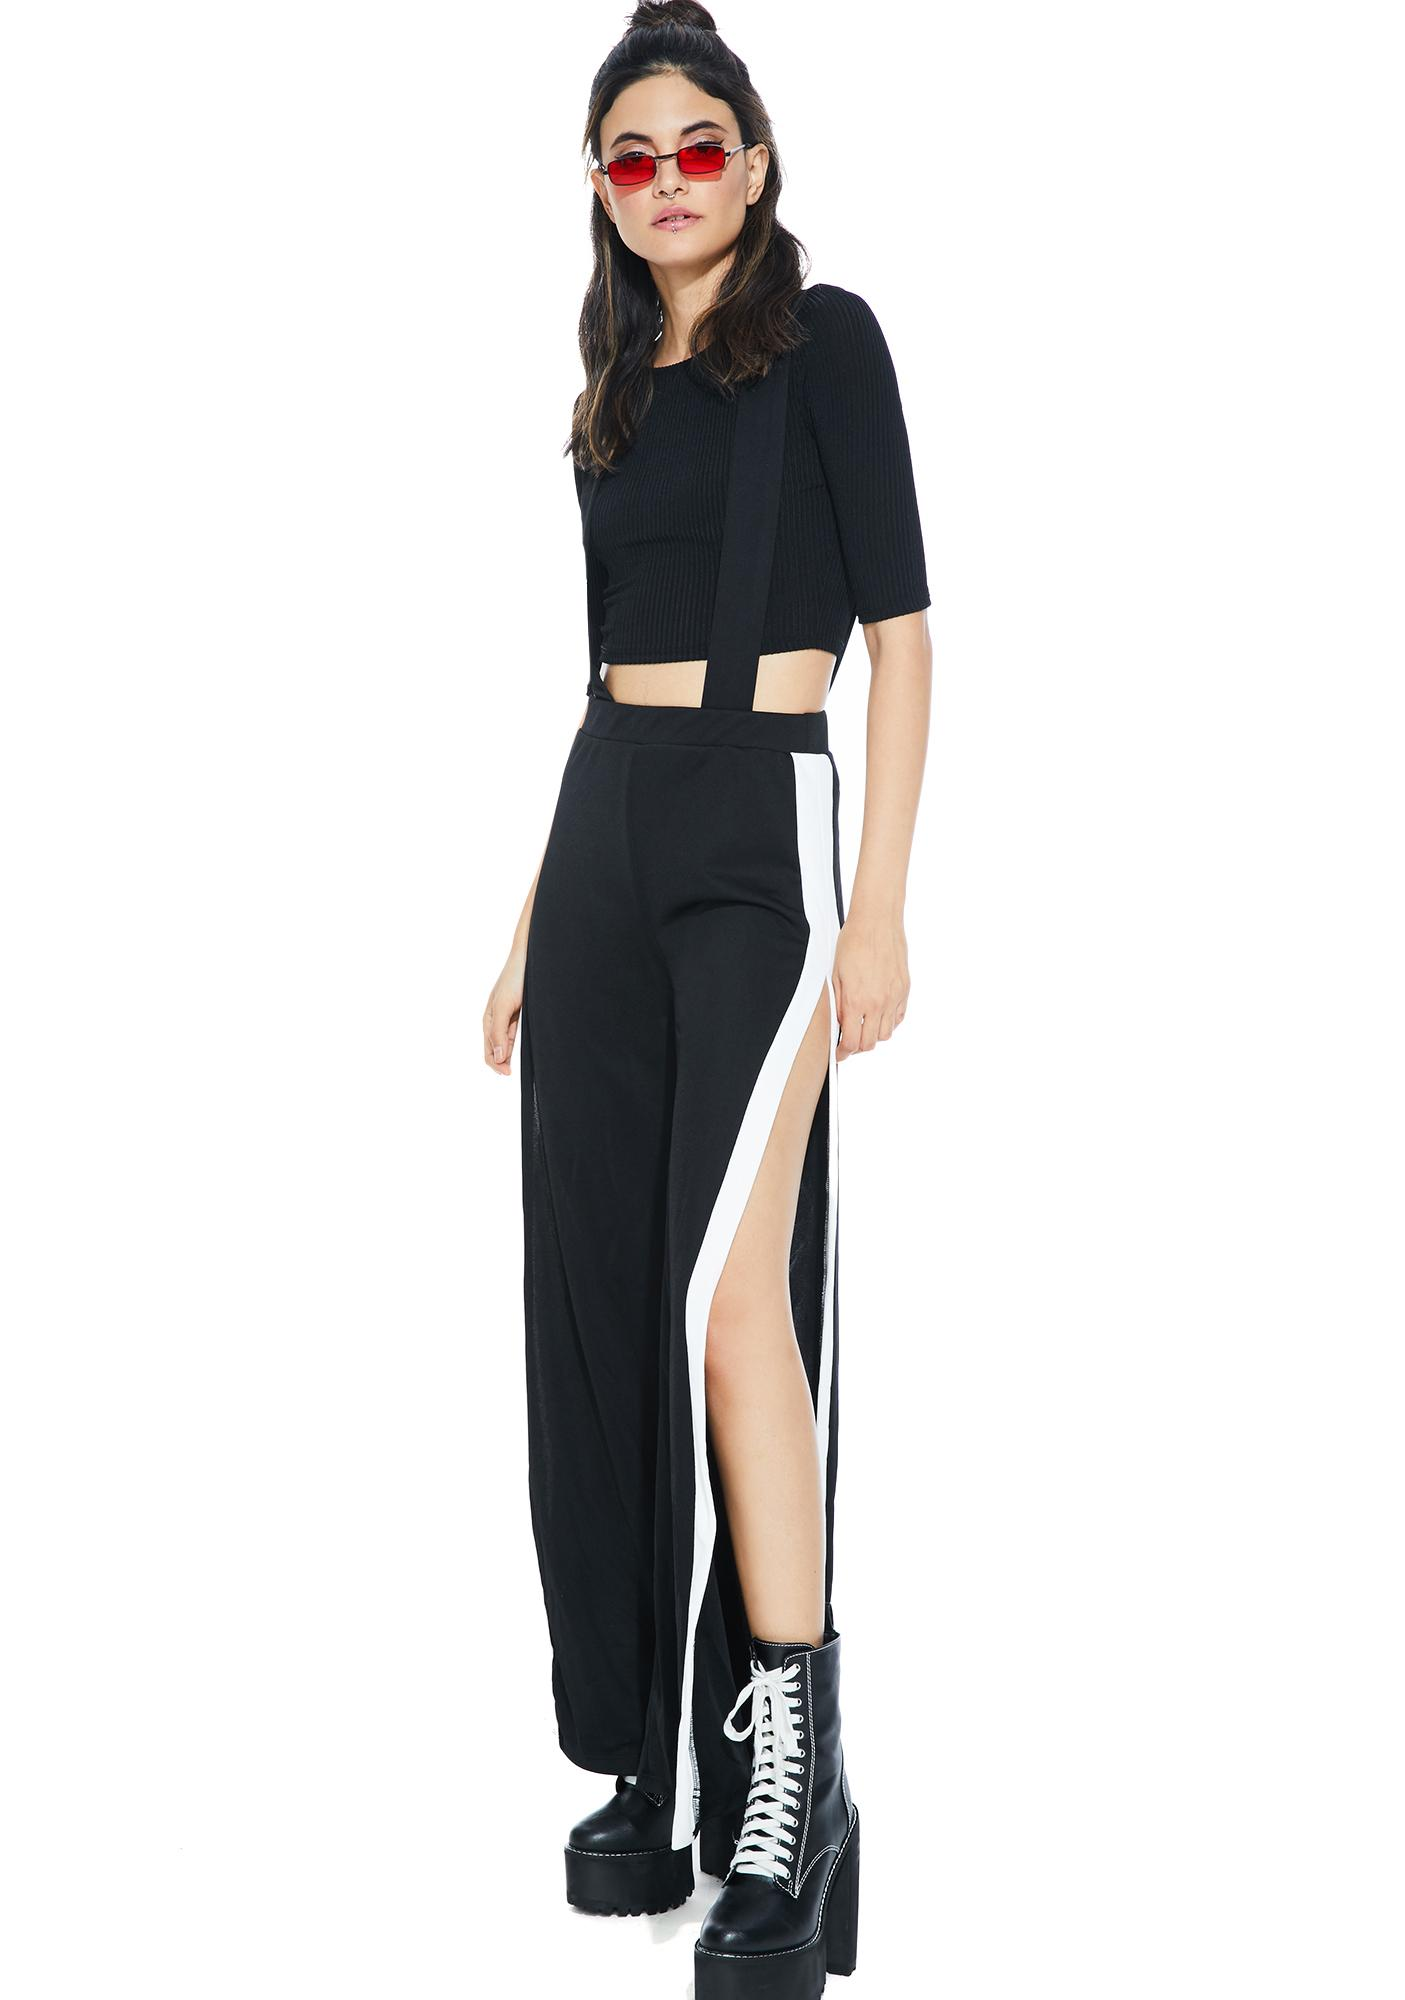 Rule Breaker Jumpsuit Set